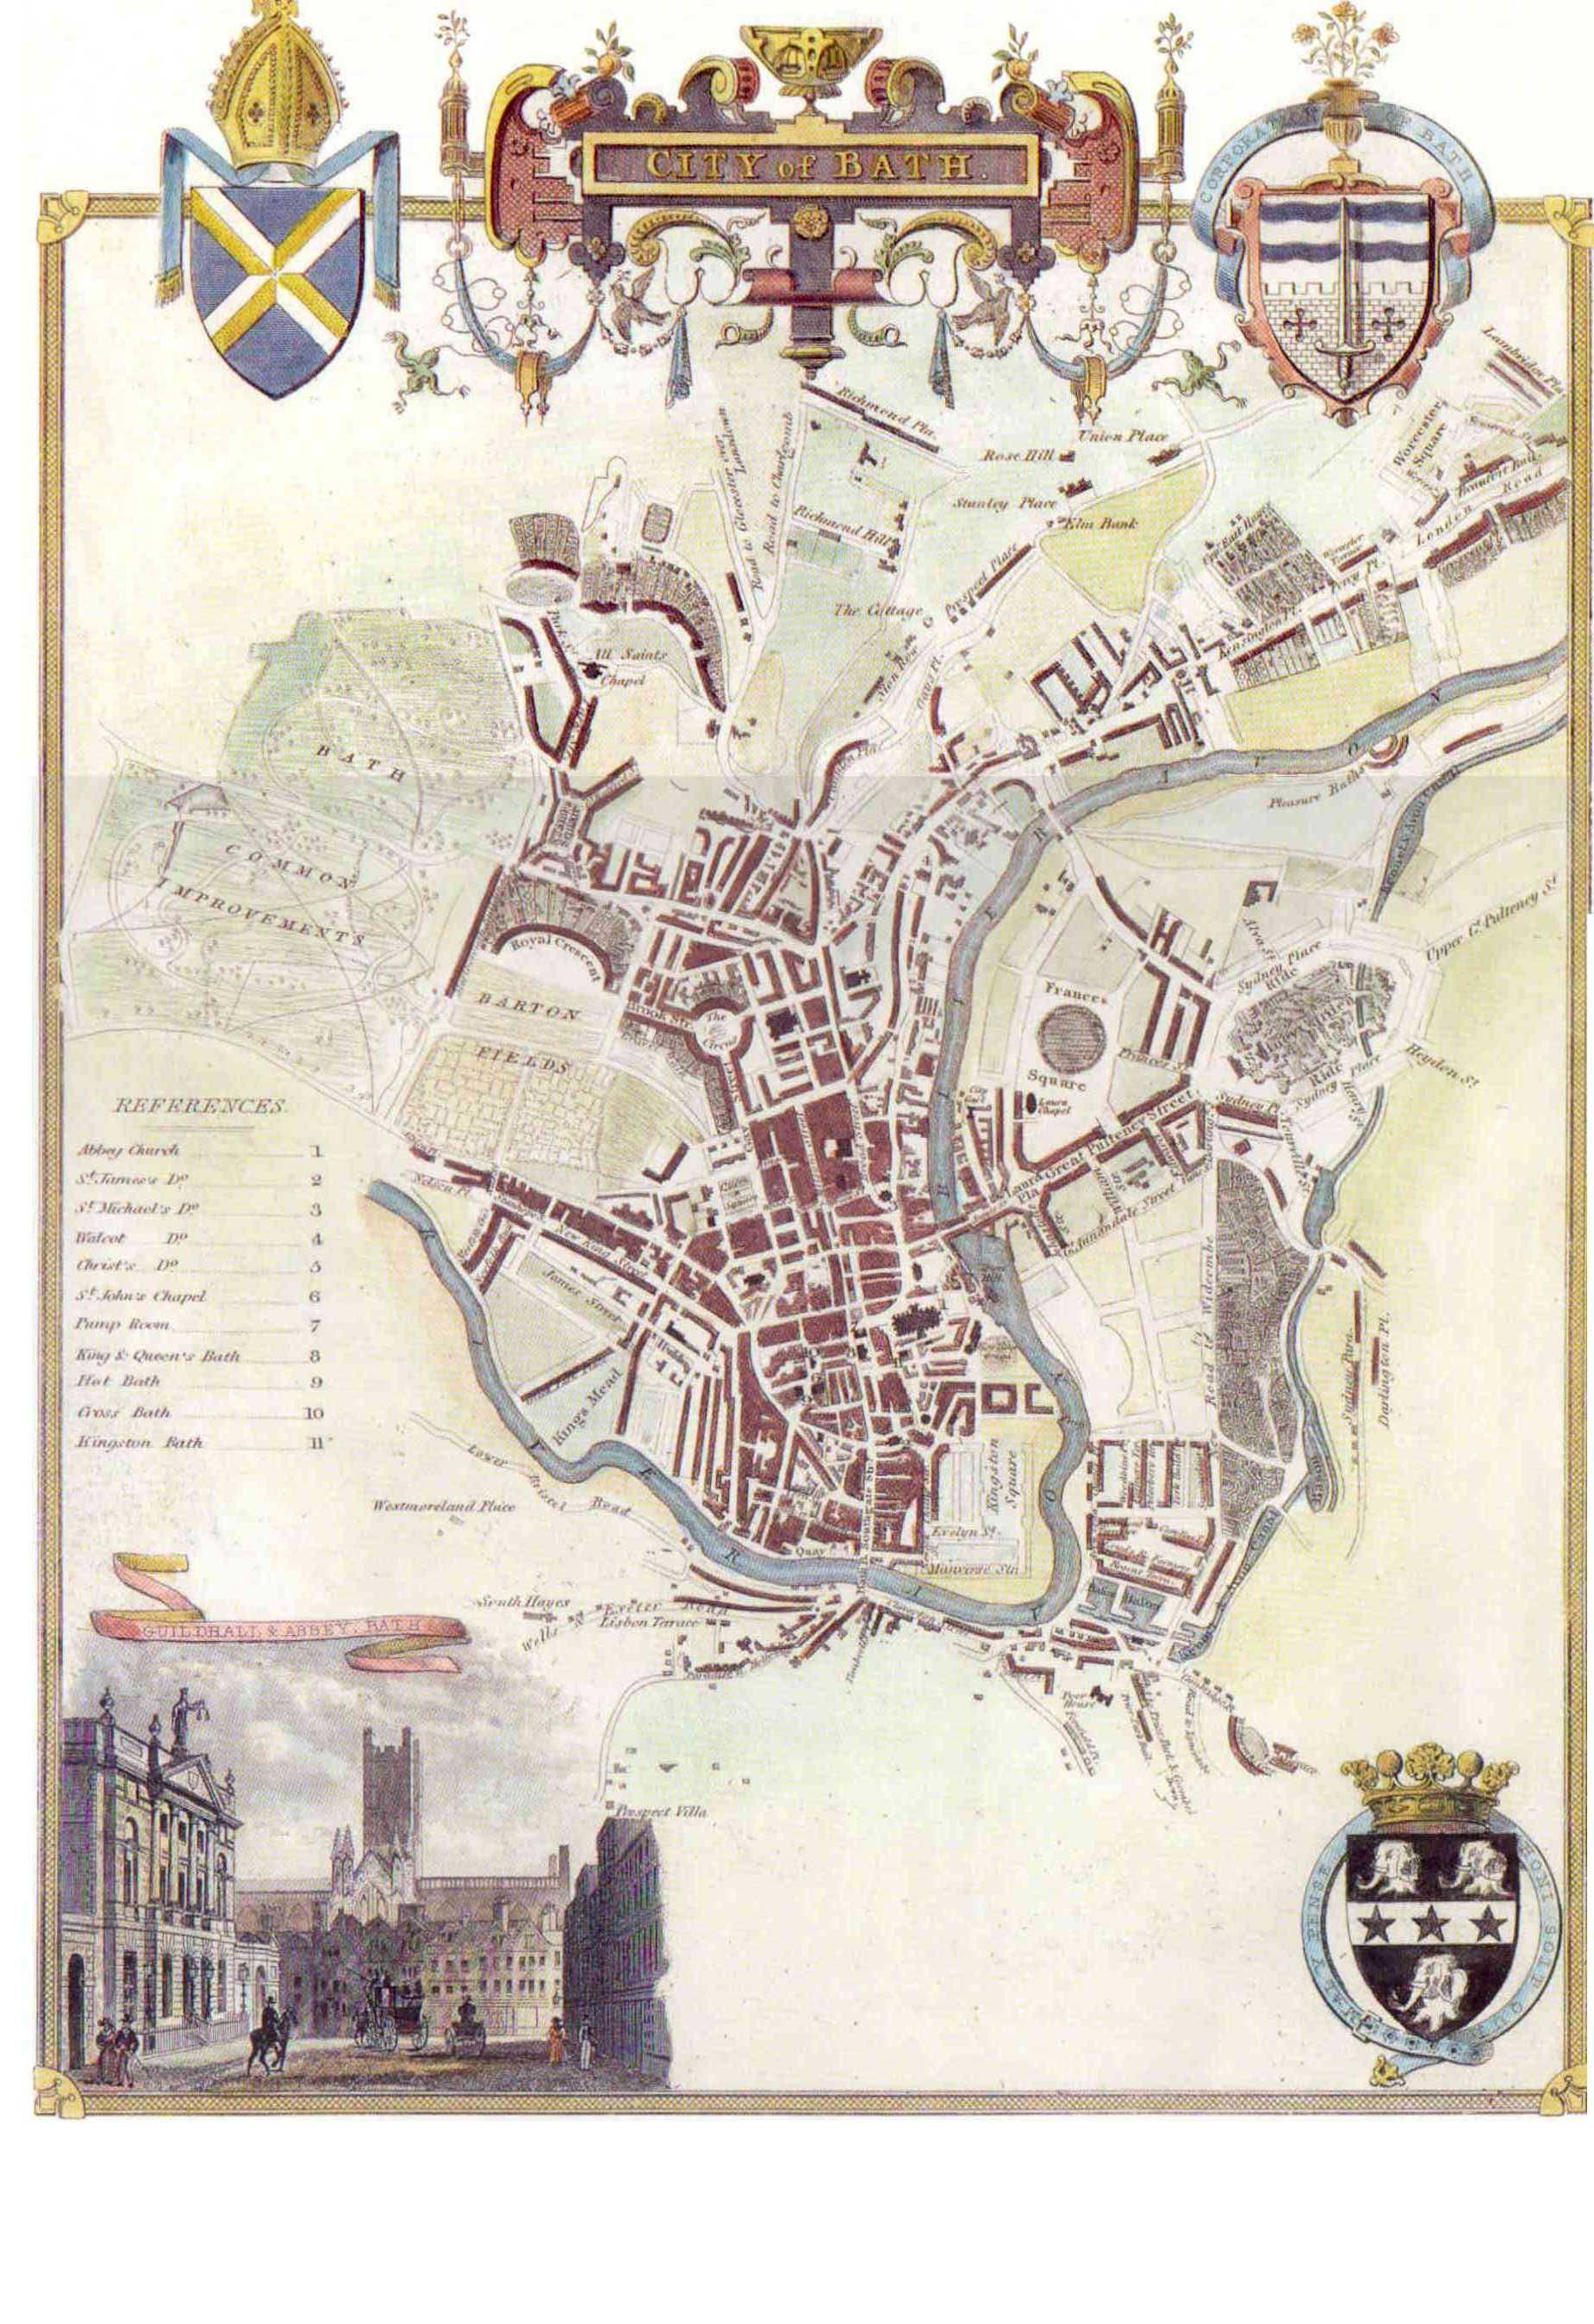 1836 map of Bath by Moule B A T H ENGLAND UK